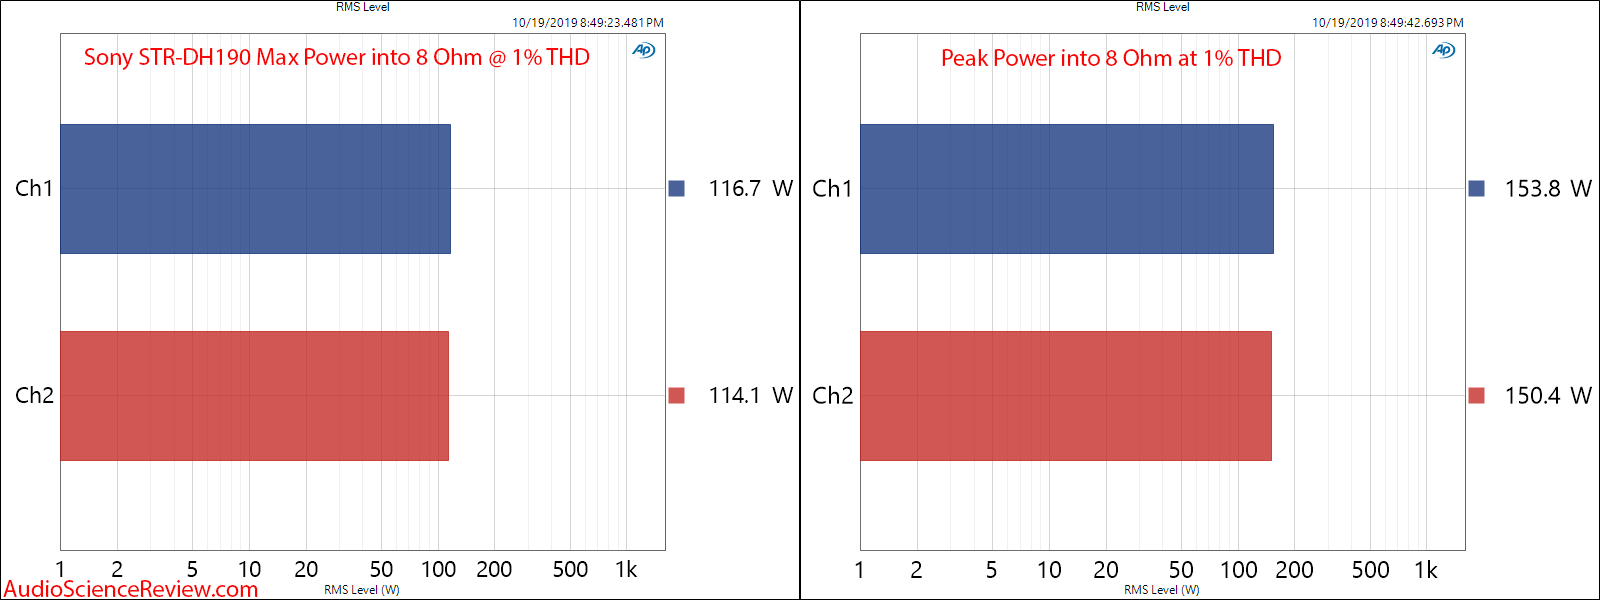 SONY STR-DH190 Amplifier Max and Peak Power into 8 Ohm Measurements.png